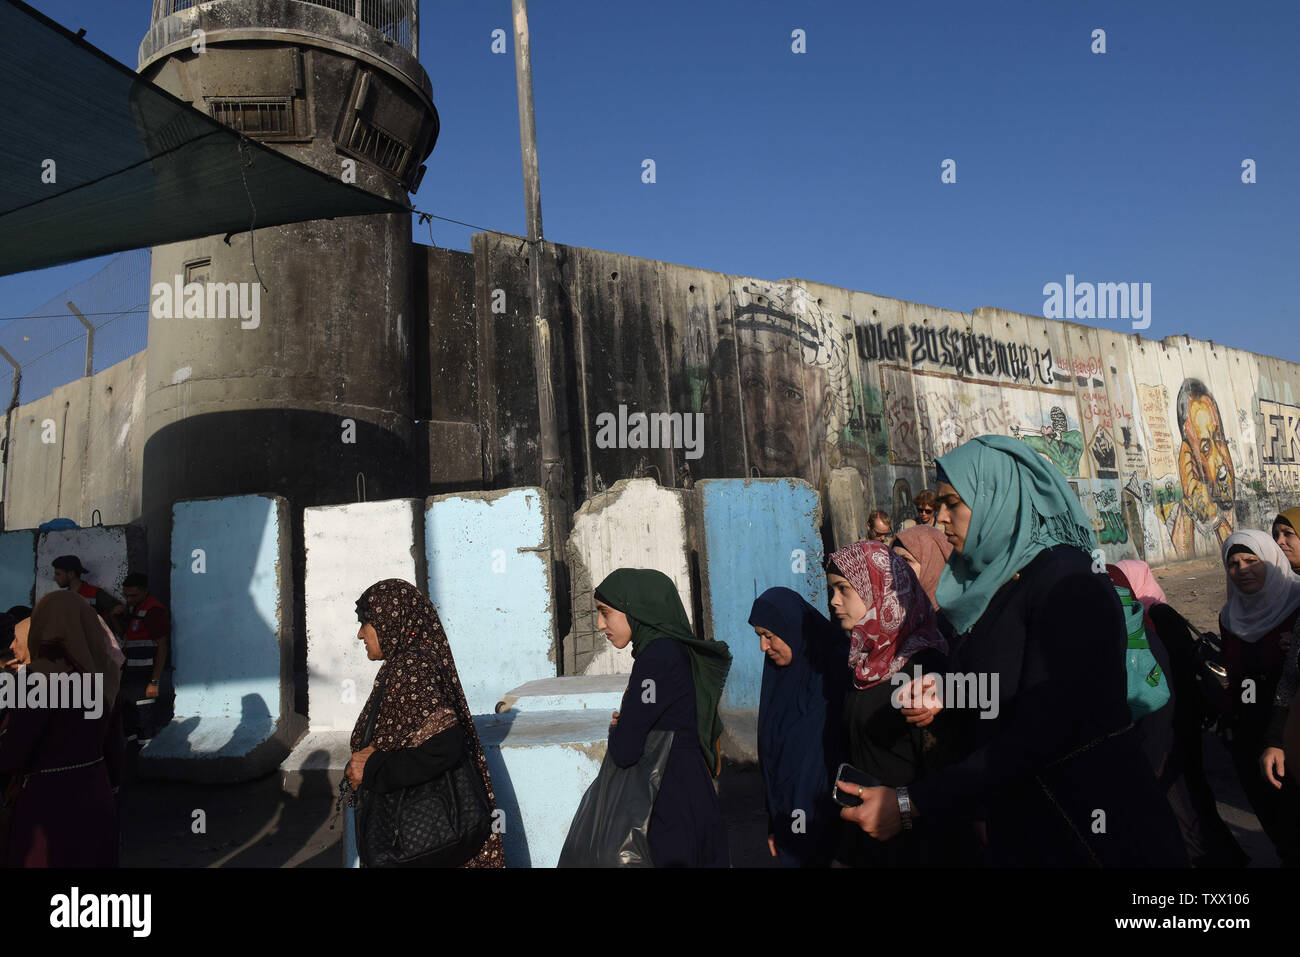 Palestinians wait in line to cross the Qalandiya checkpoint, West Bank, from Ramallah to Jerusalem, to pray at the Al-Aqsa Mosque on the last Friday of the Muslim holy month of Ramadan, June 8, 2018.  Photo by Debbie Hill/UPI - Stock Image